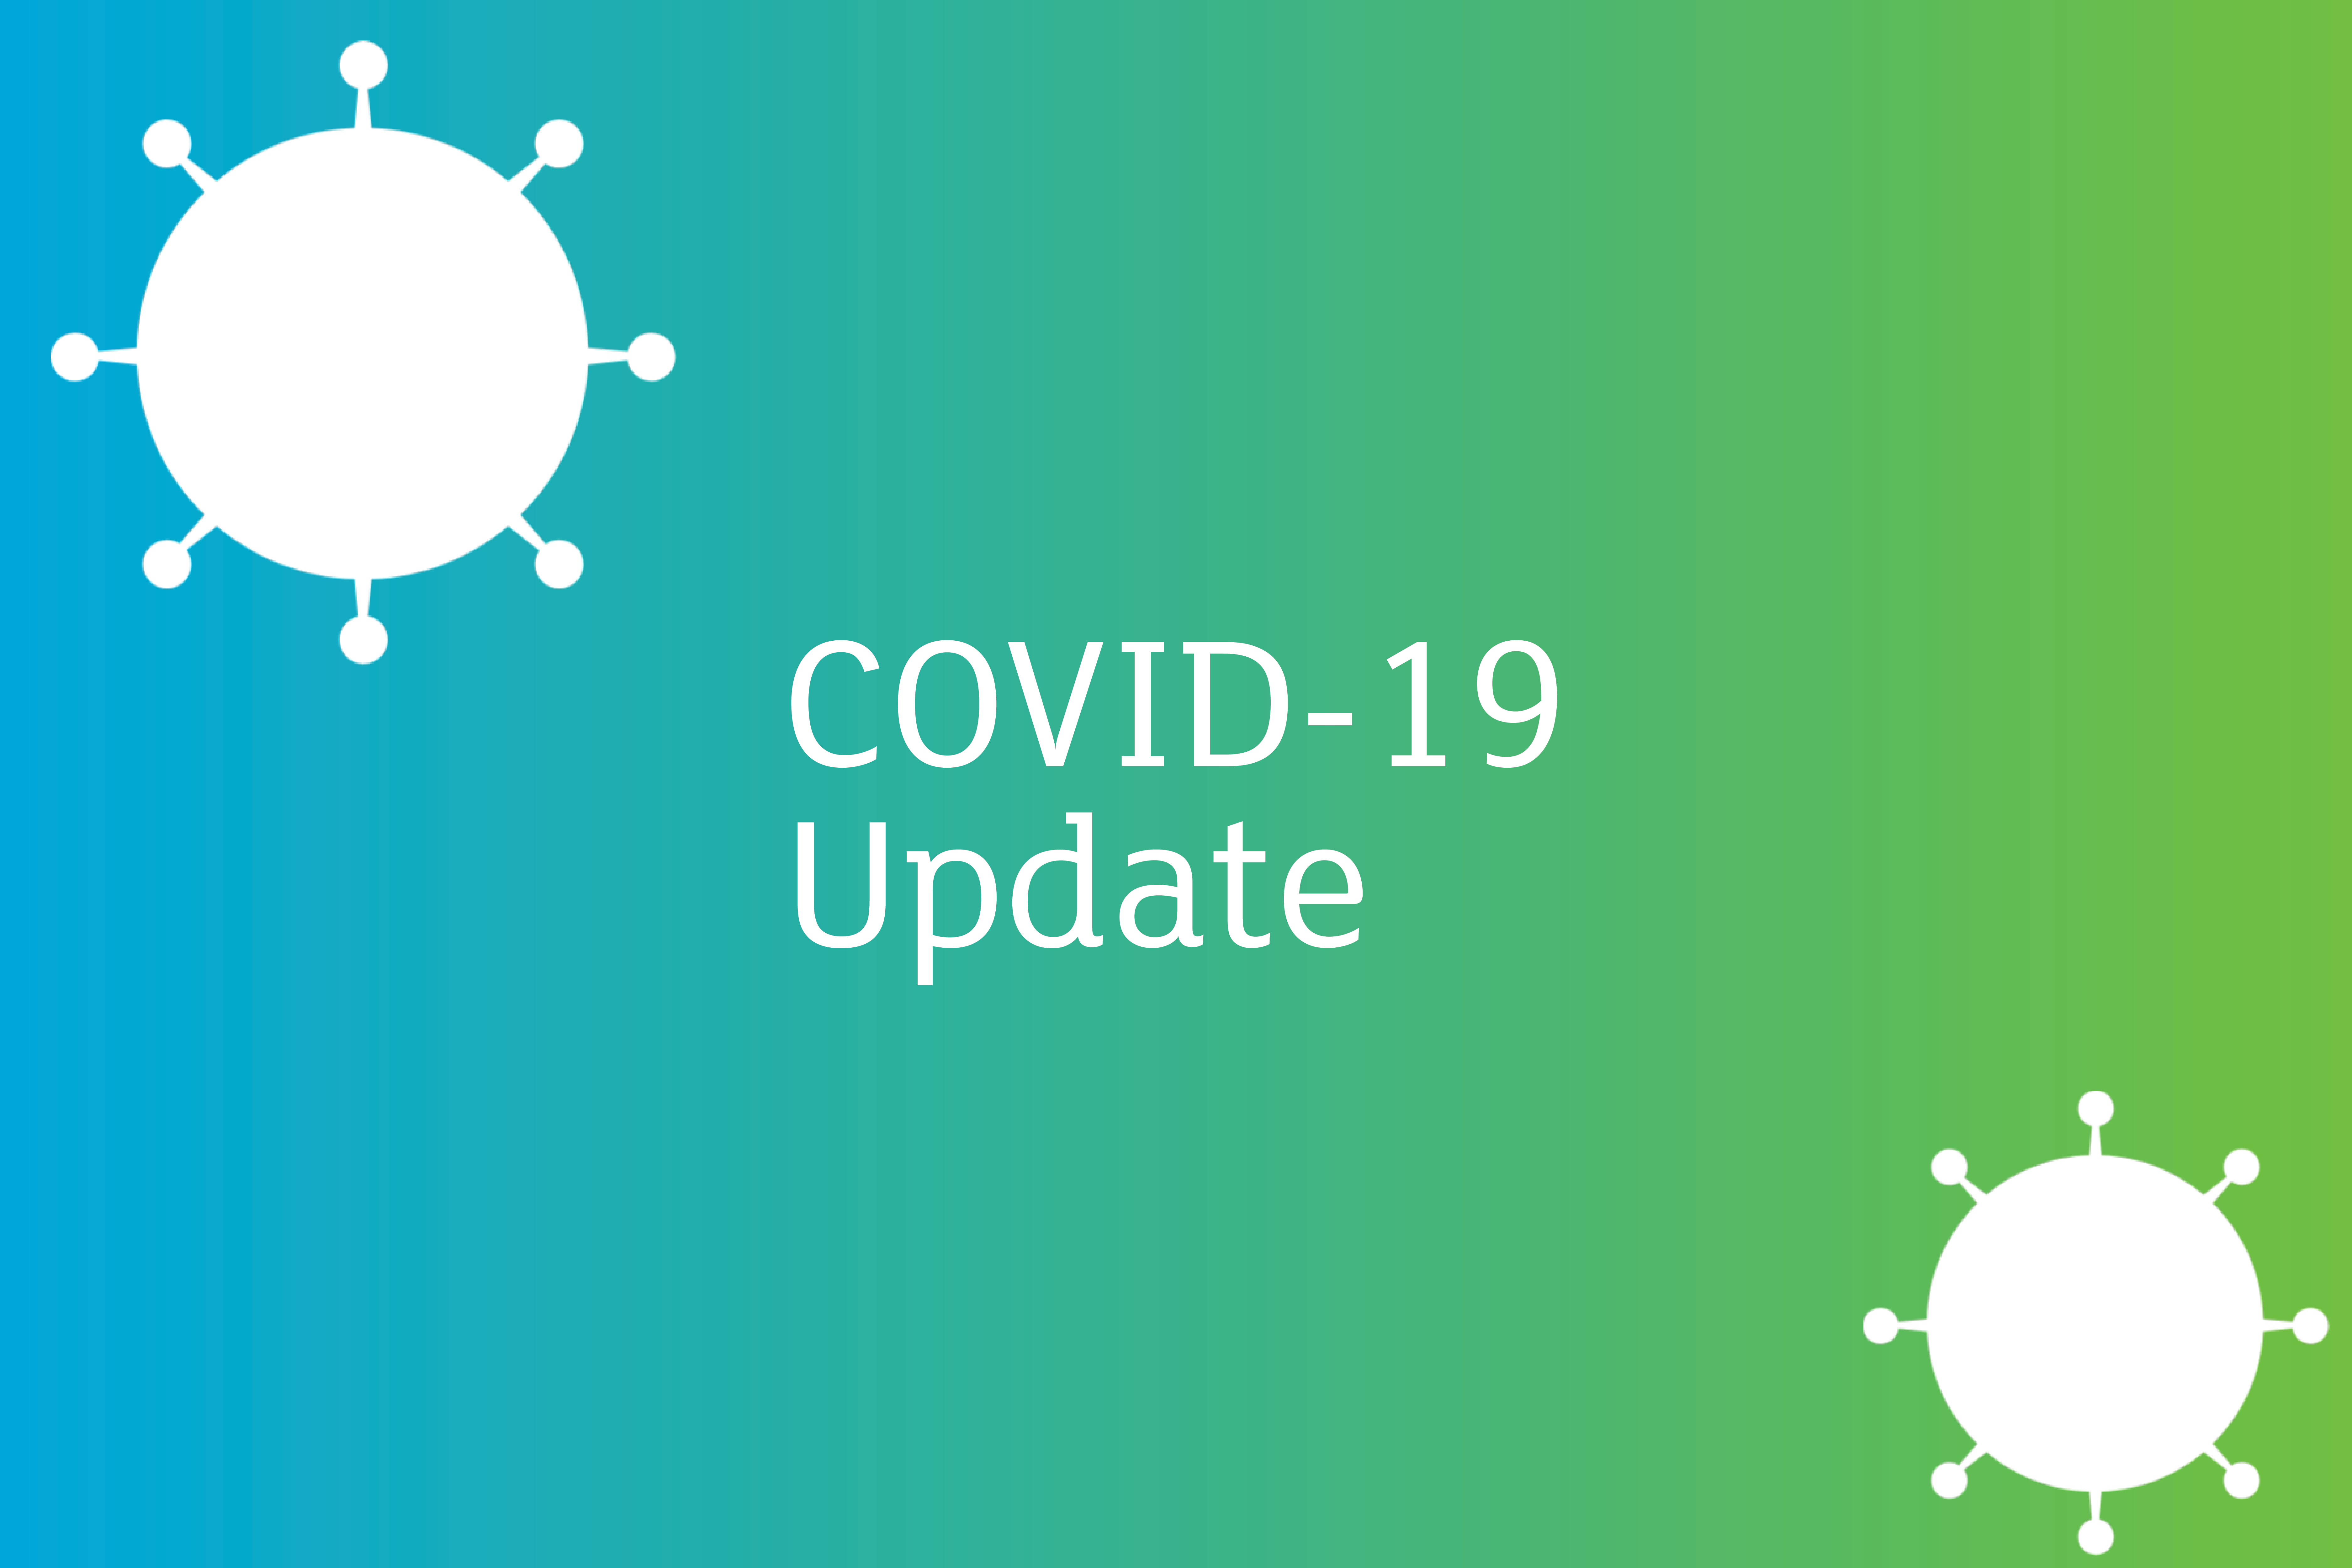 Engagement Opportunities During the COVID-19 Pandemic